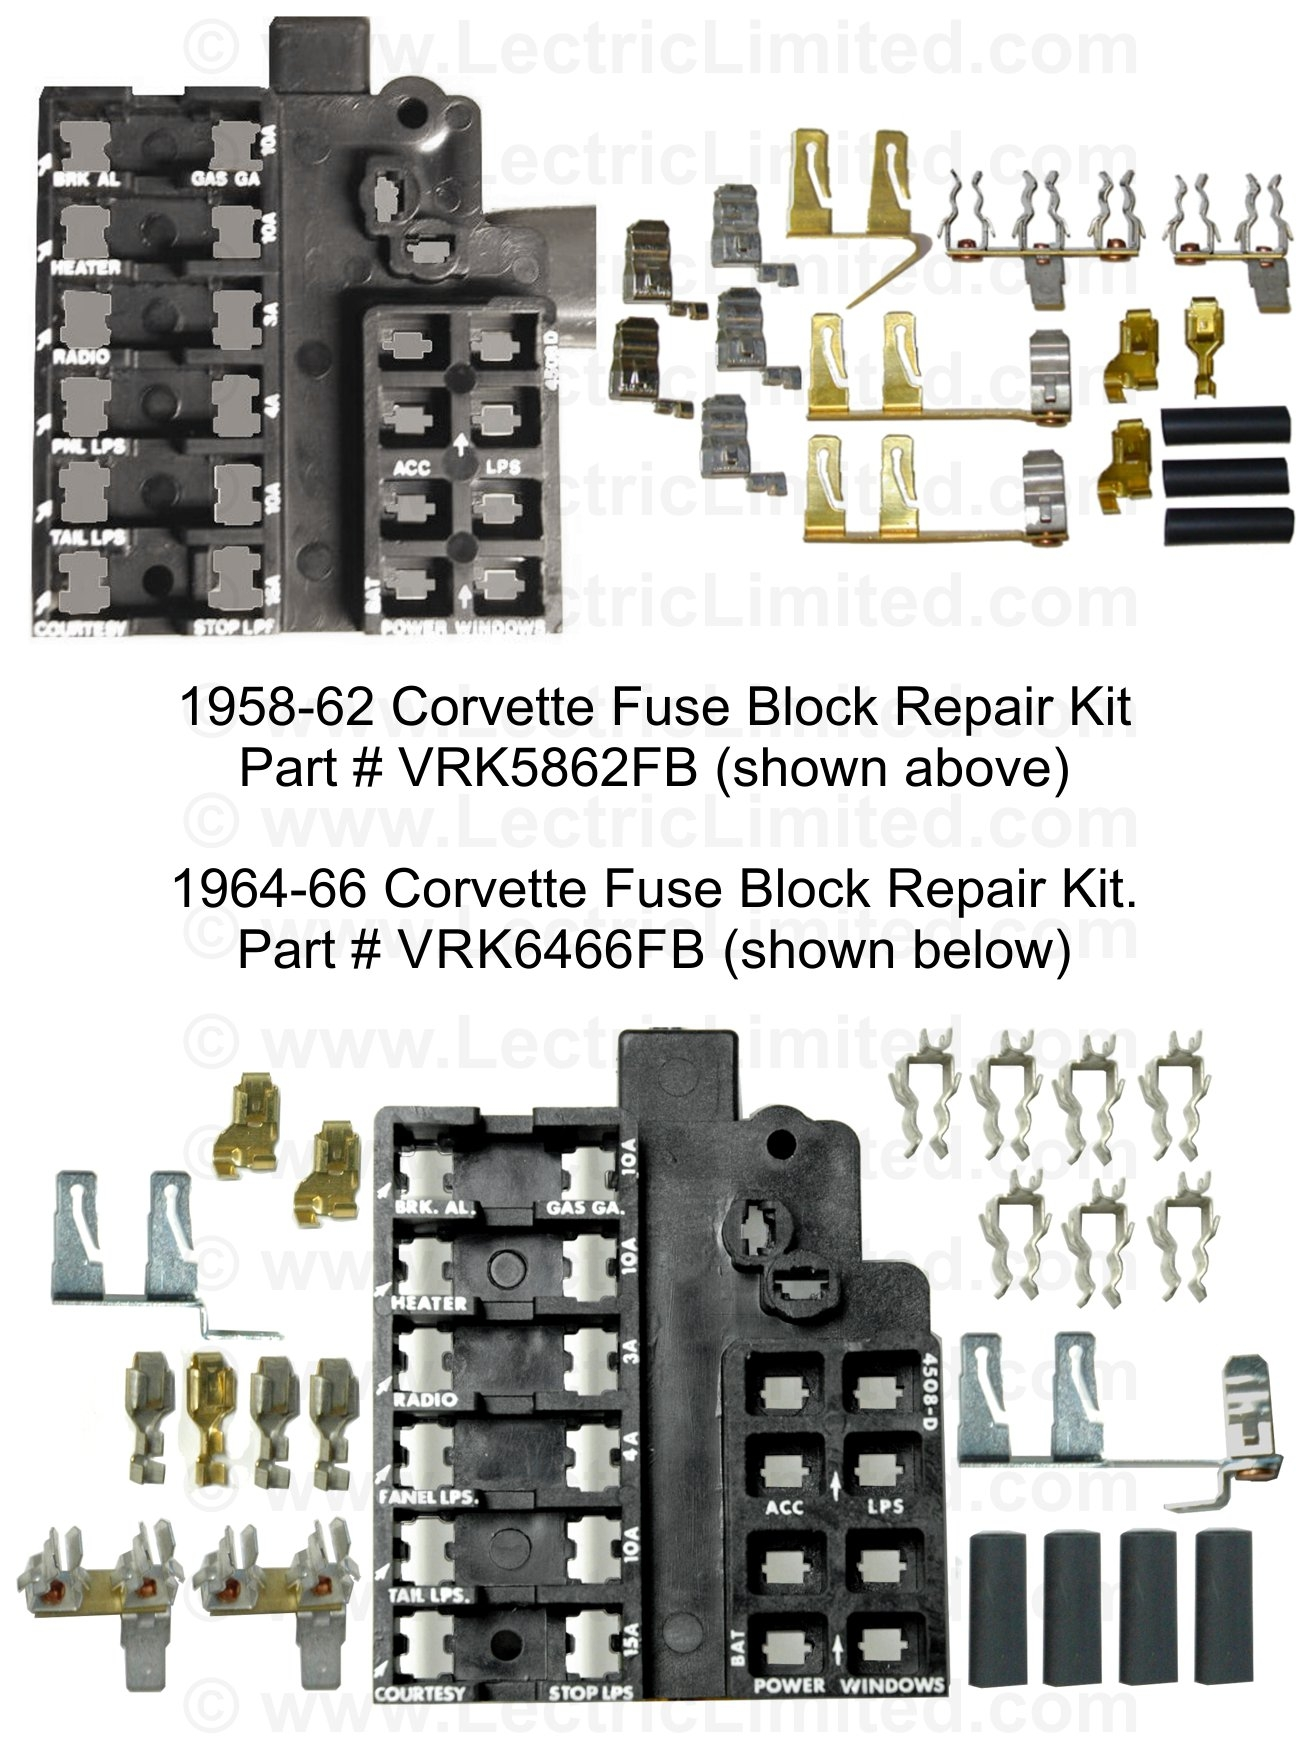 1976 Corvette Fuse Box Connectors Wiring Library Gmc Silverado Block Repair Kit